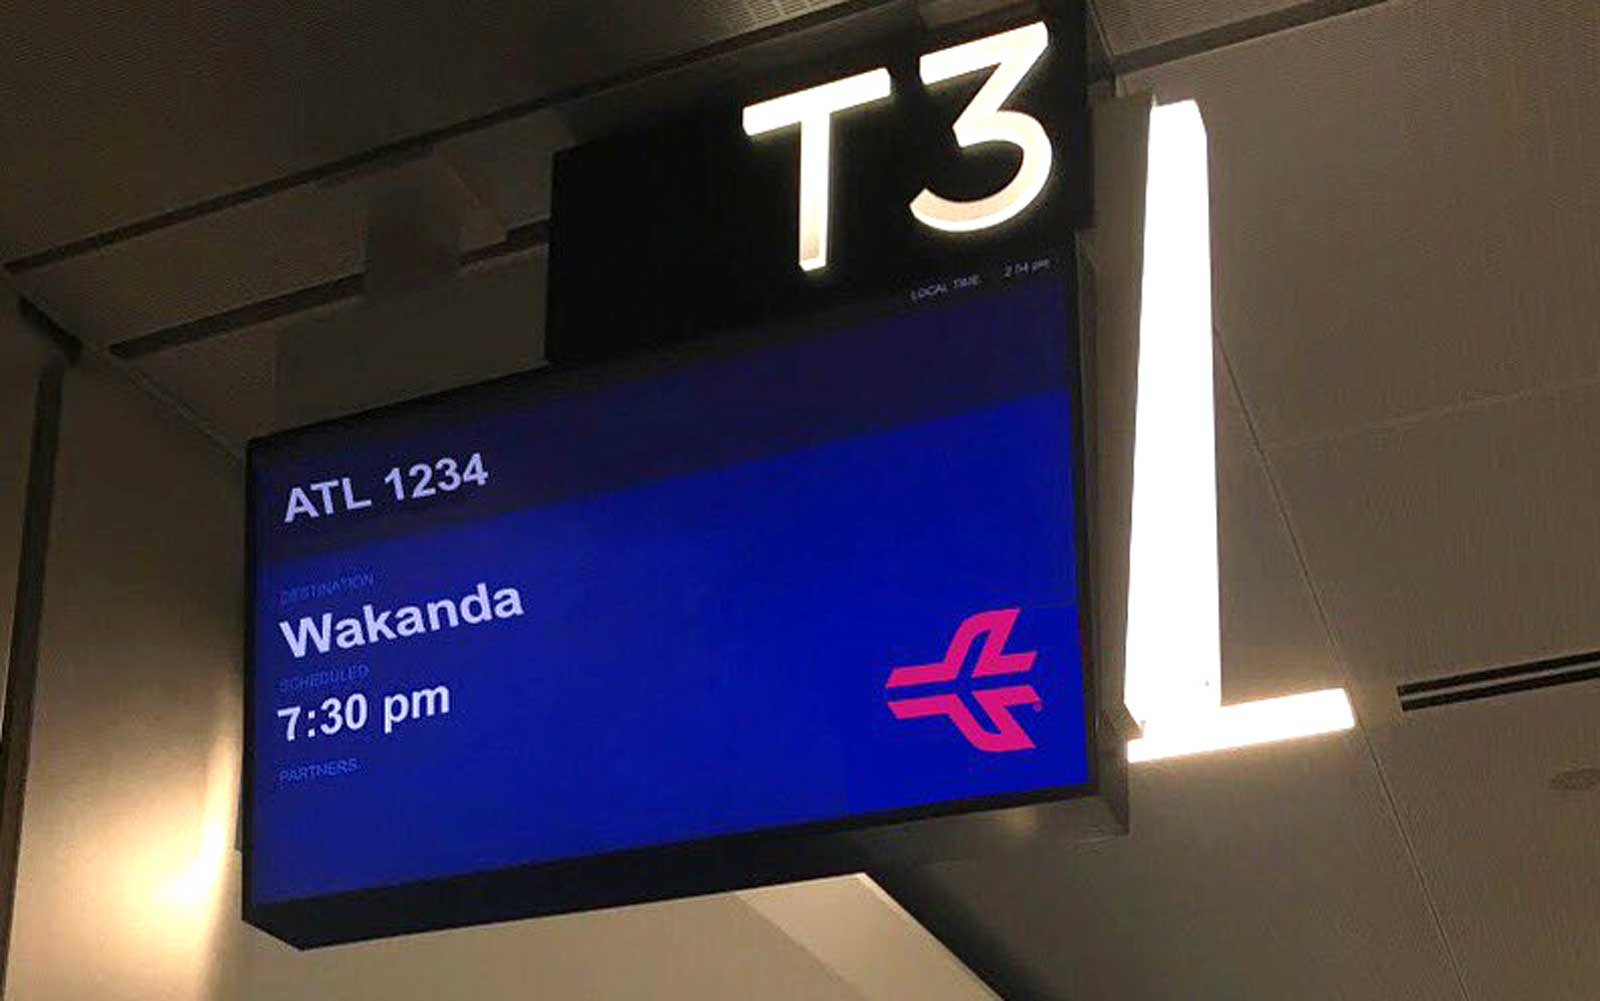 Atlanta Airport Is Offering Flights to Wakanda and 'Black Panther' Fans Are Freaking Out